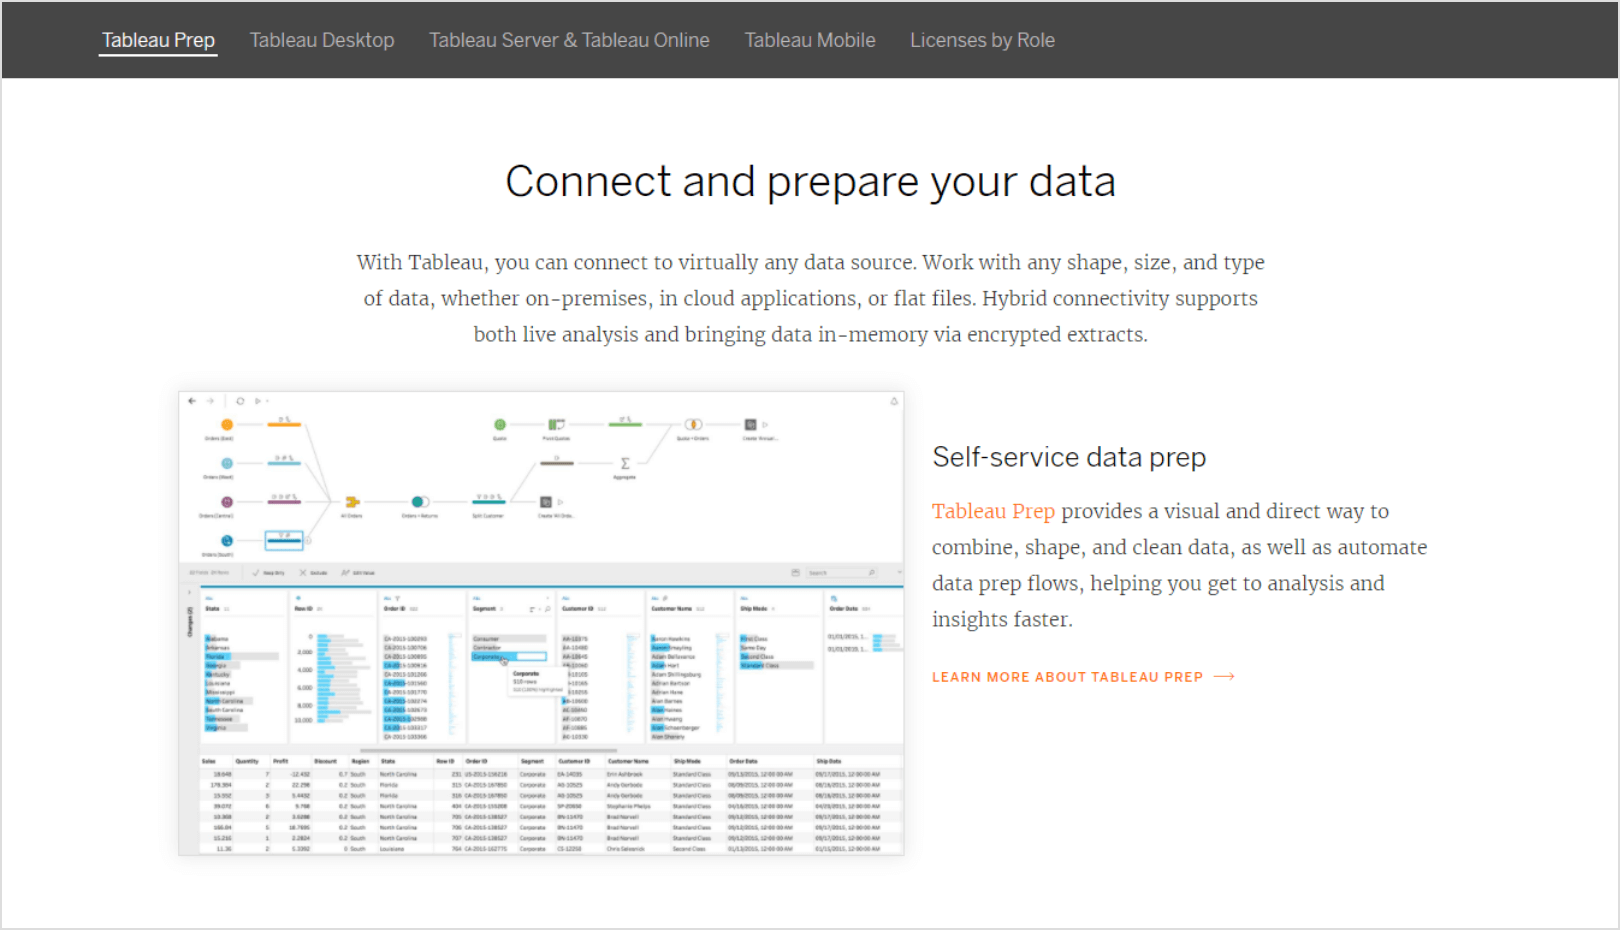 Tableau Prep Connect and Prepare Your Data